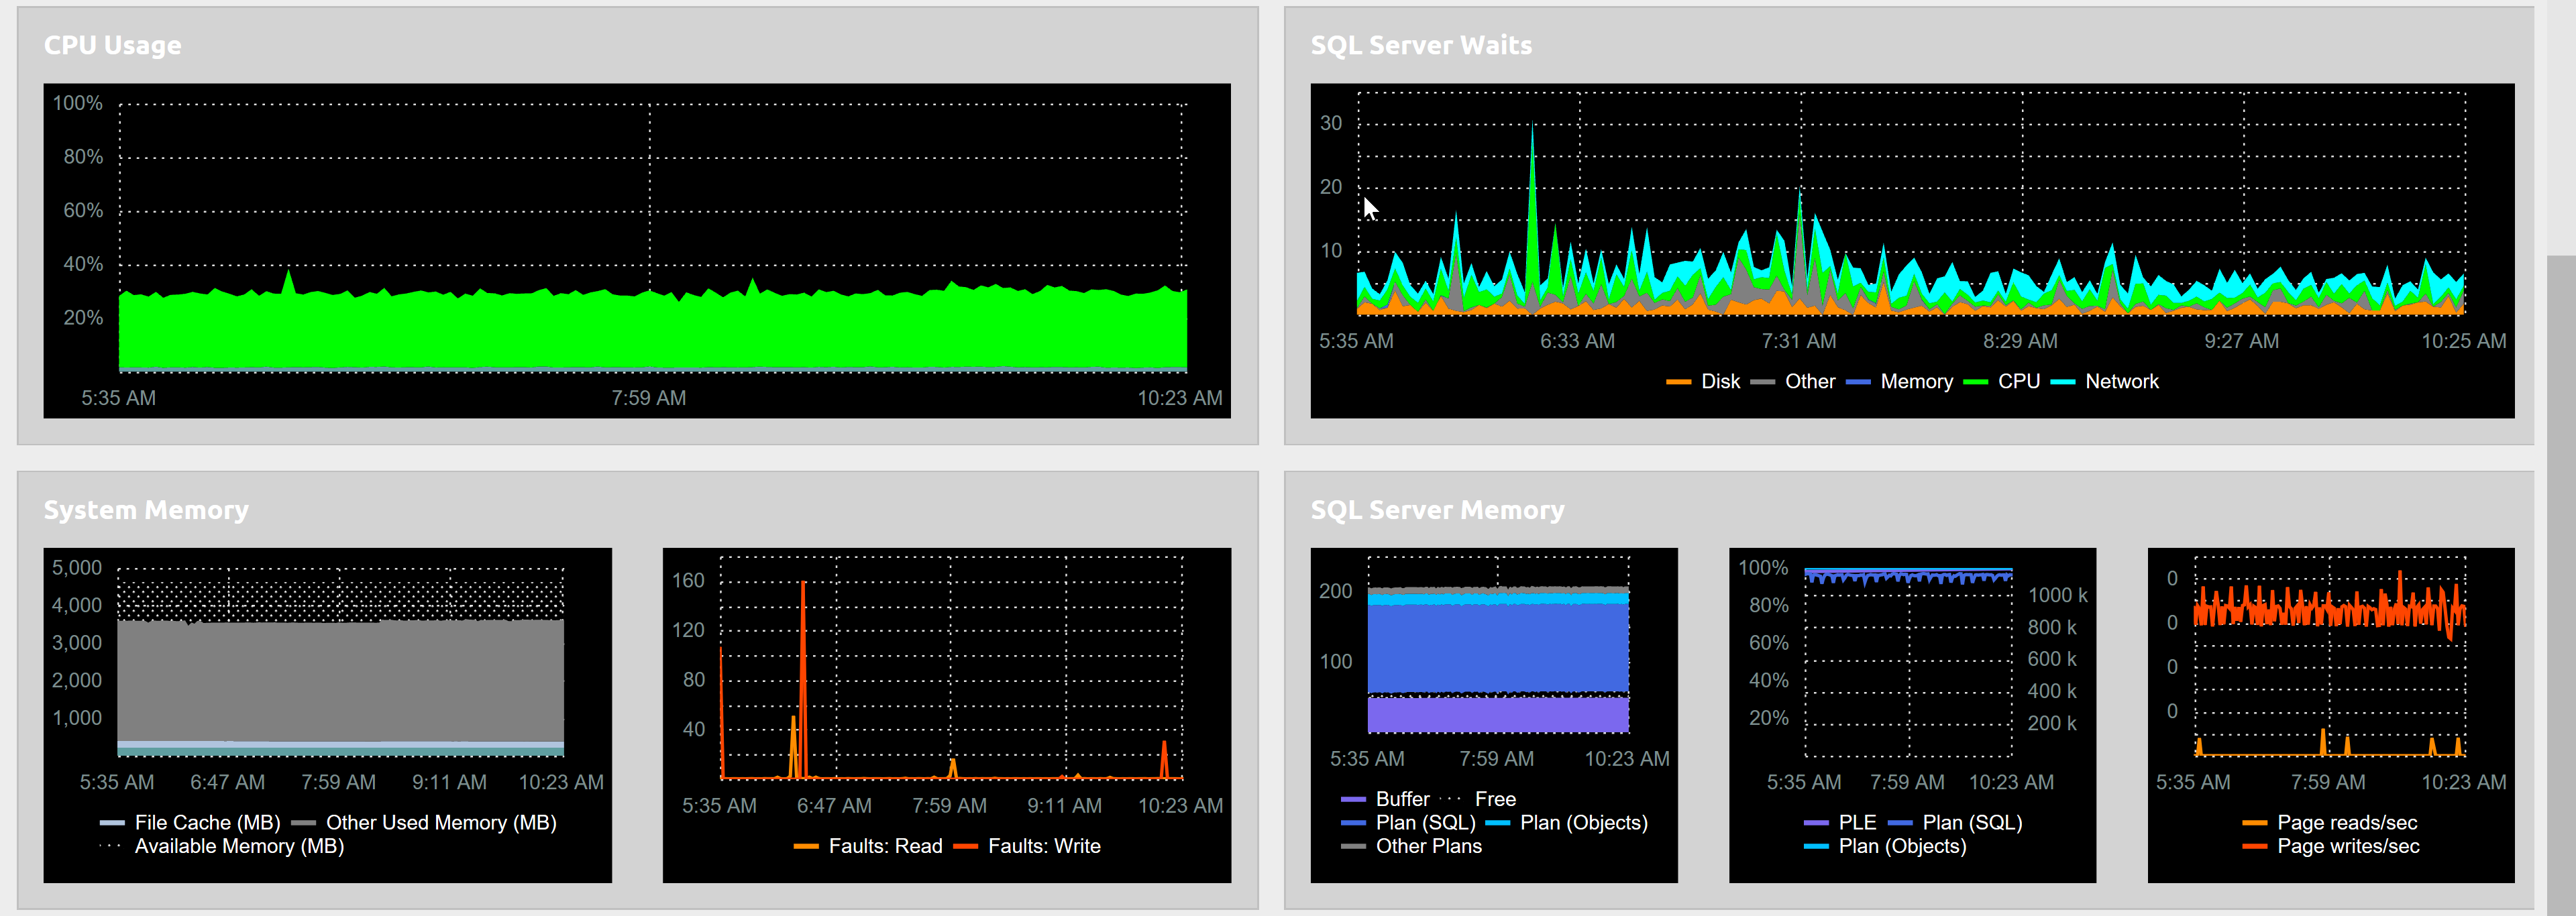 SentryOne Cloud Dashboard graphs